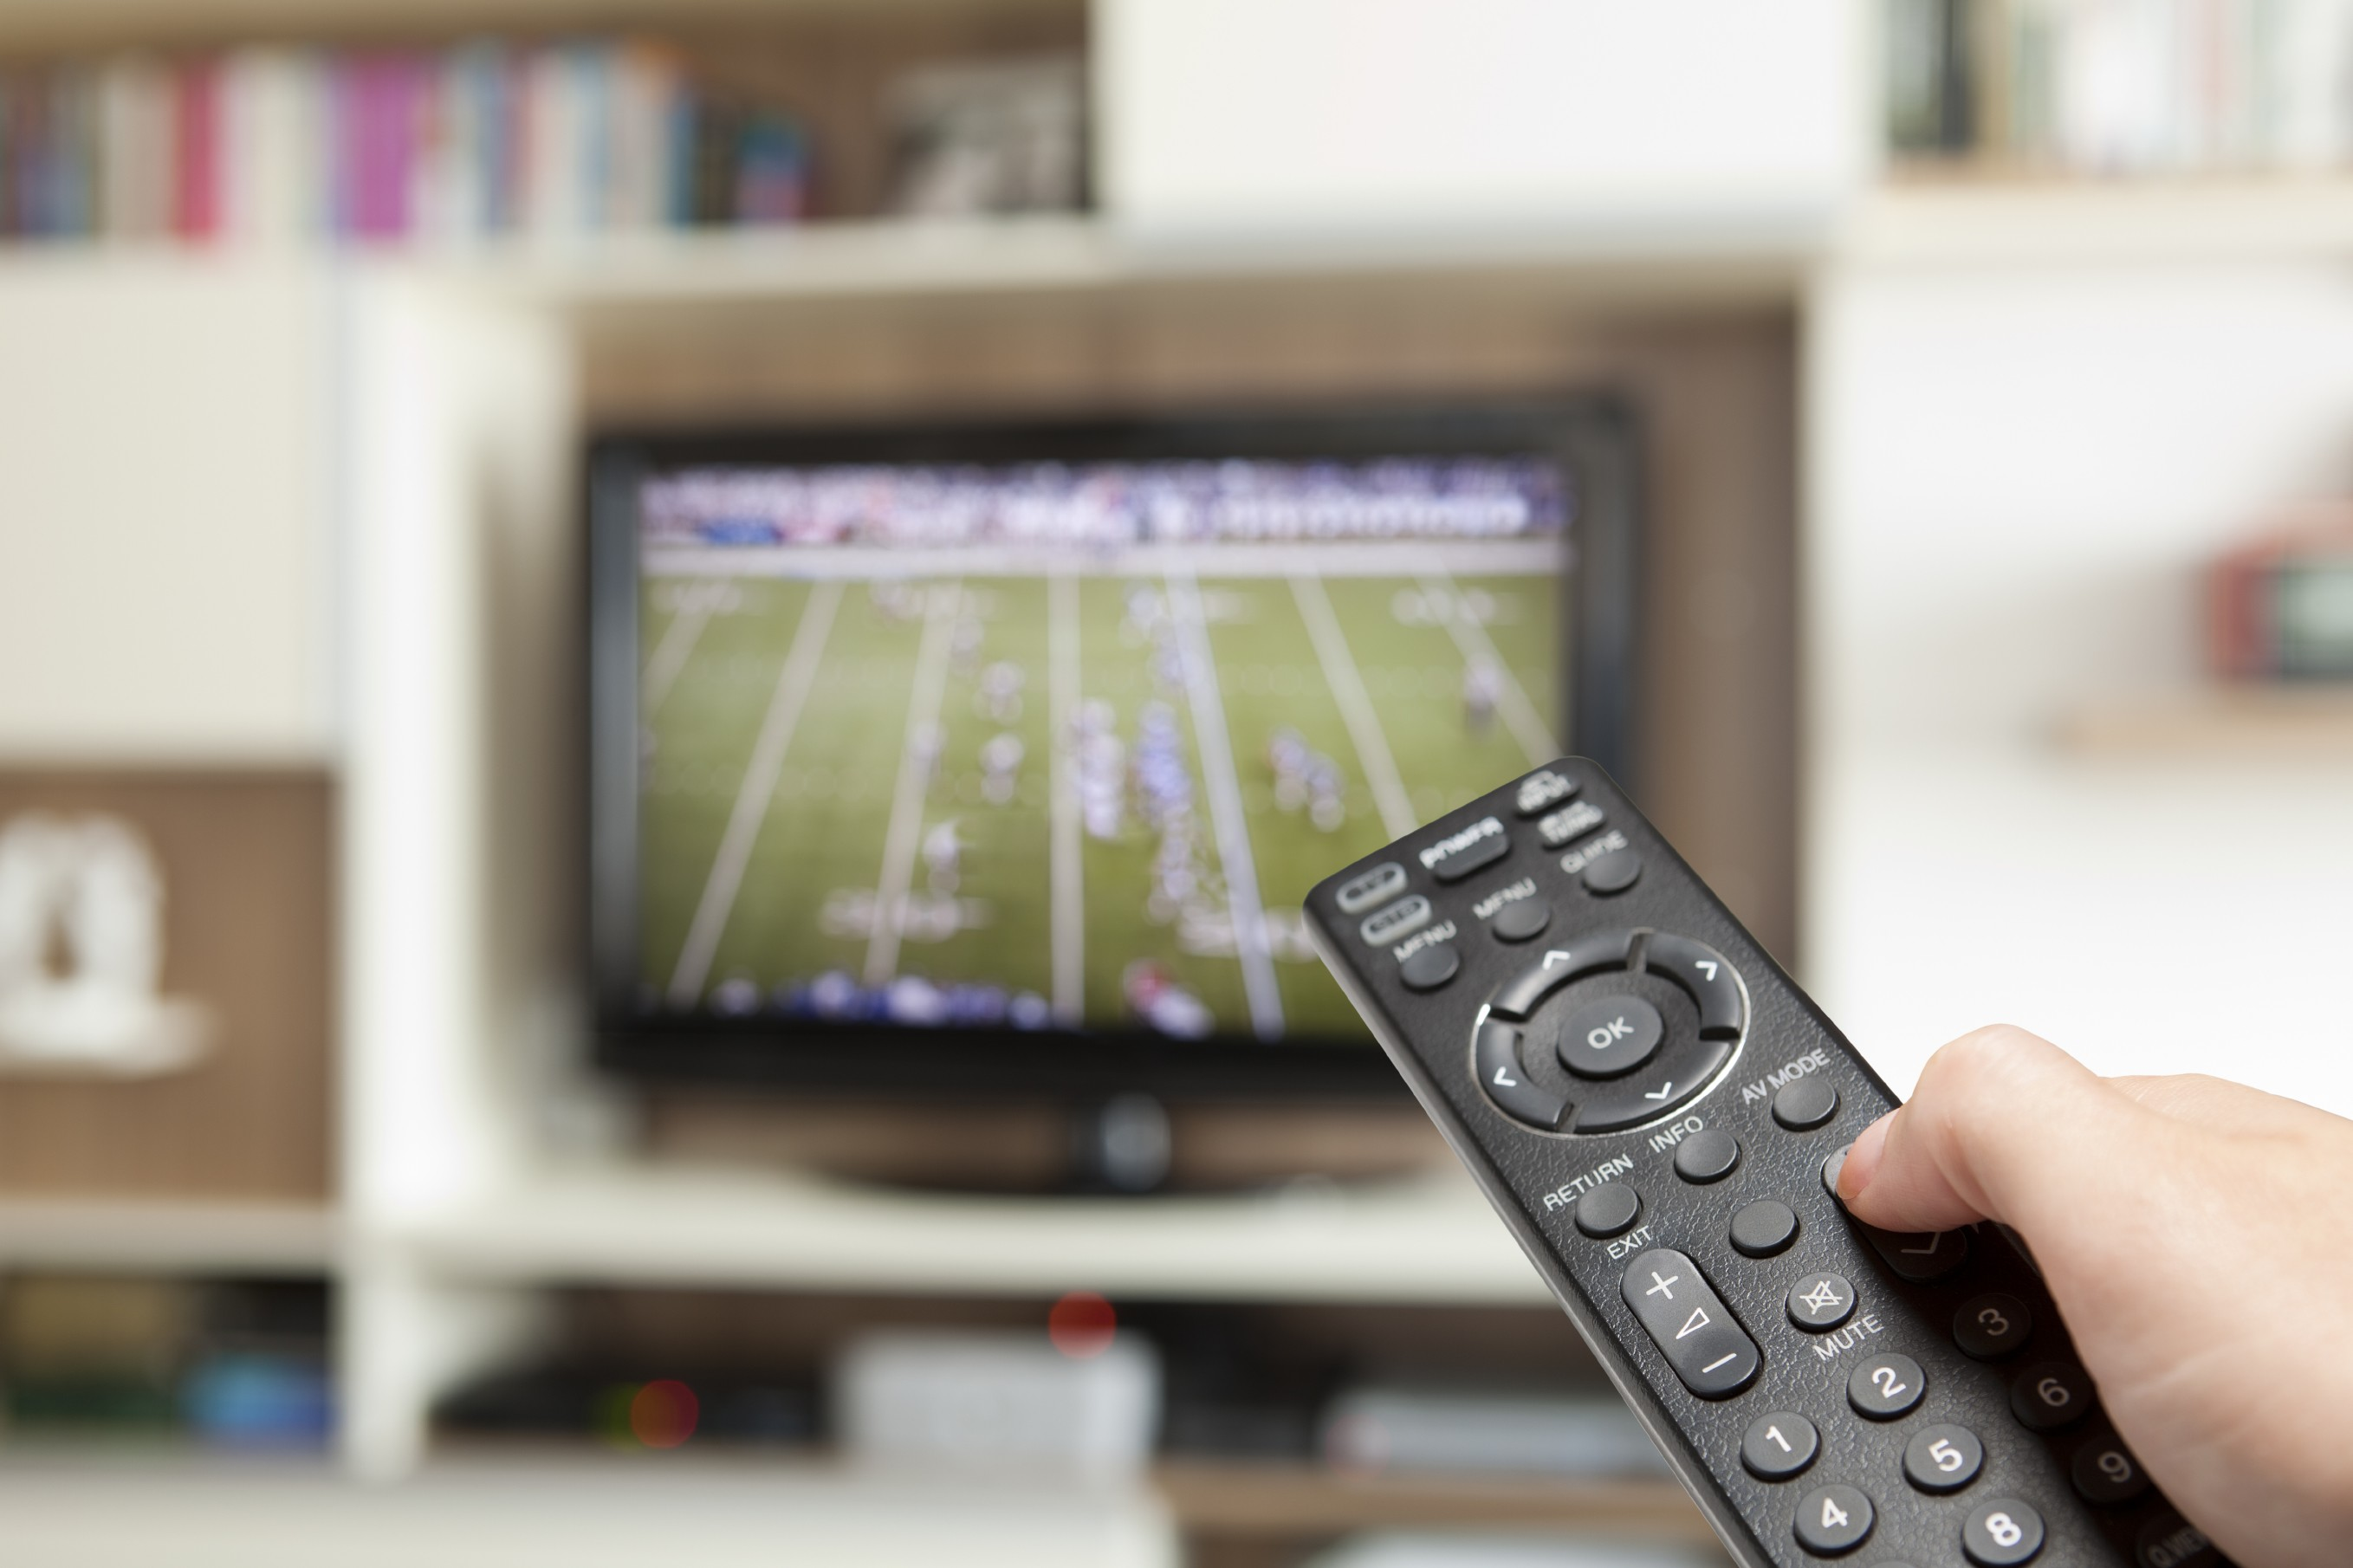 A black television remote is pointed at a tv in the distance which has a football game on.